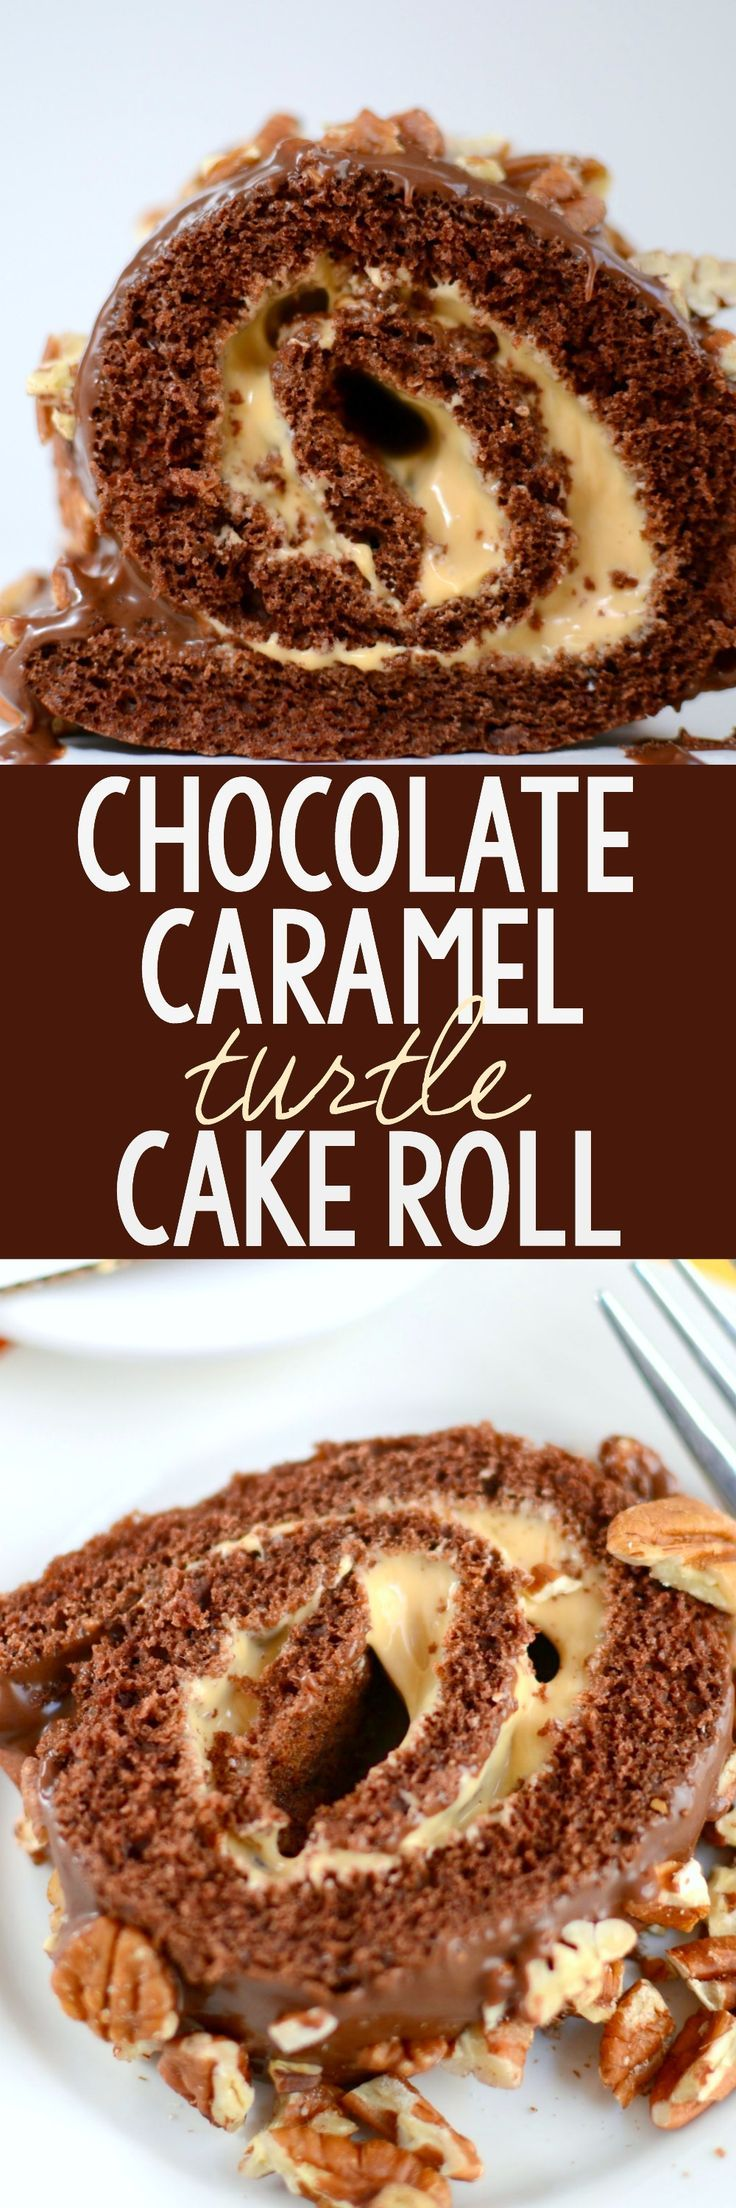 Chocolate Caramel Turtle Cake Roll - this EASY cake roll recipe starts with a cake mix! The chocolate cake roll is filled with caramel ganache and topped with chocolate ganache and pecans, like a turt (Easy Chocolate Cake)